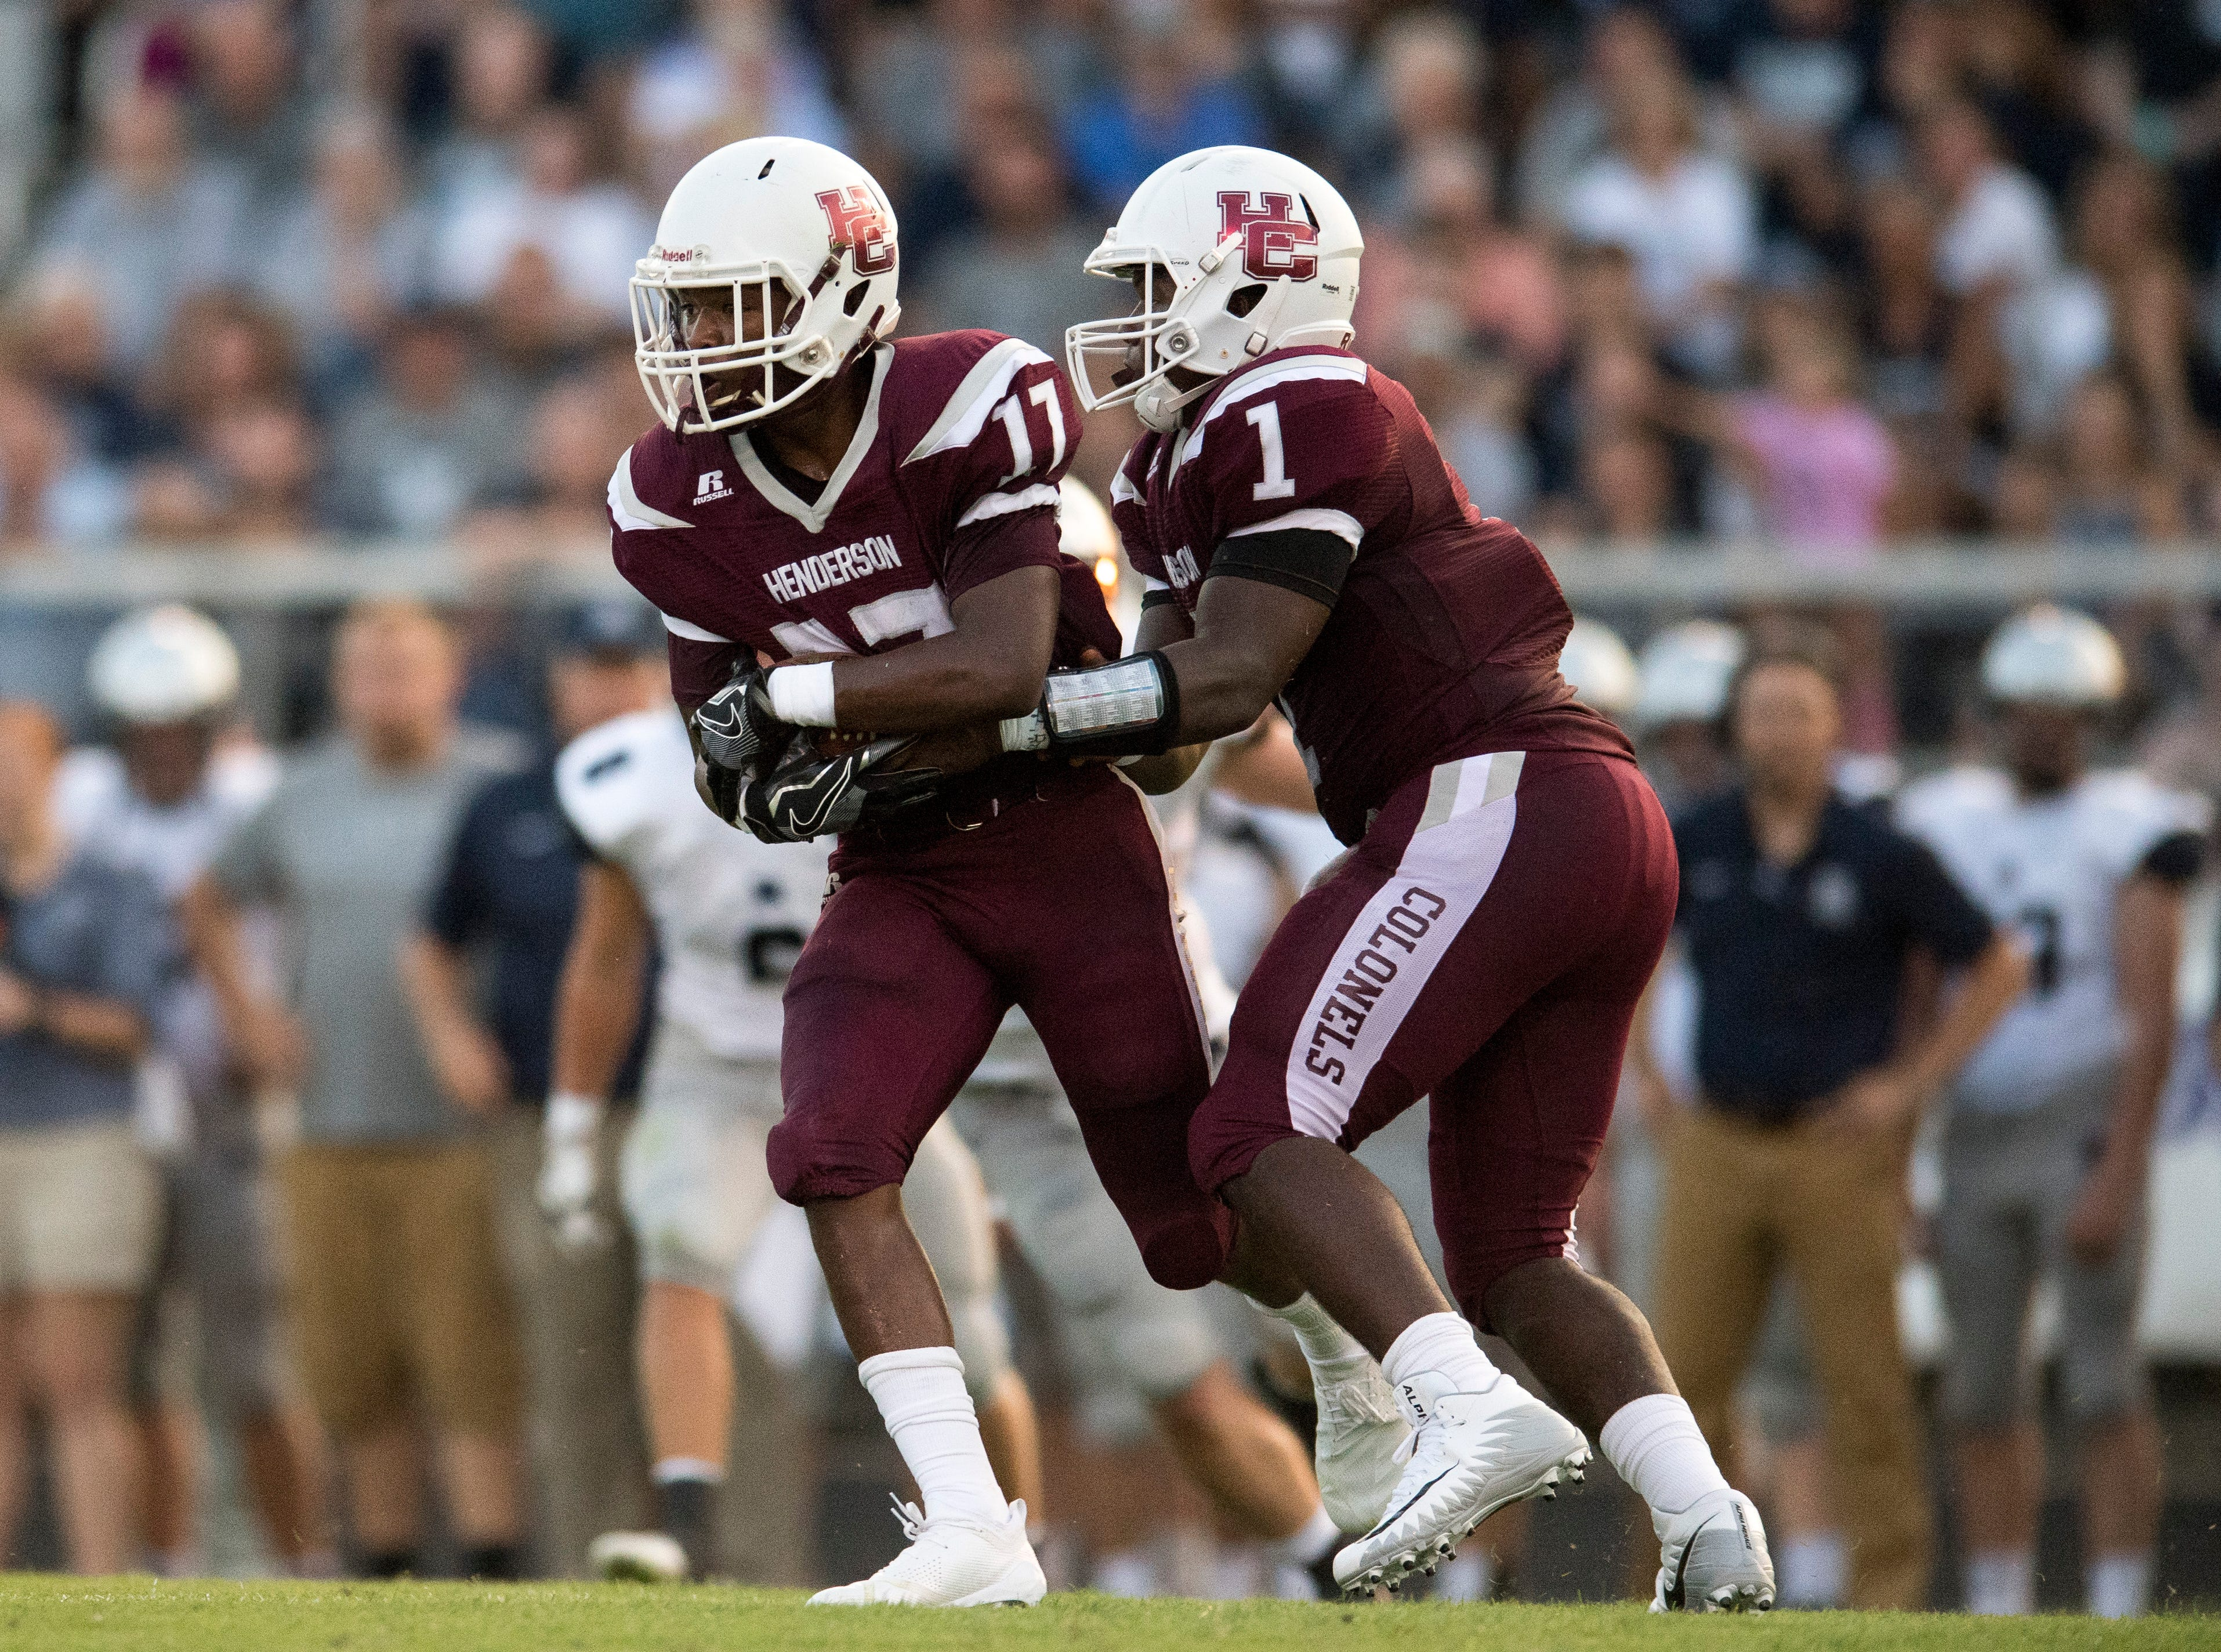 Henderson's Skip Patterson (1)  hands the ball to HendersonÕs Isaiah Easley (17) during Reitz vs Henderson County game at Colonel Stadium Friday, August 17, 2018. The Panthers defeated the Colonels 41-35 in the season opening game.